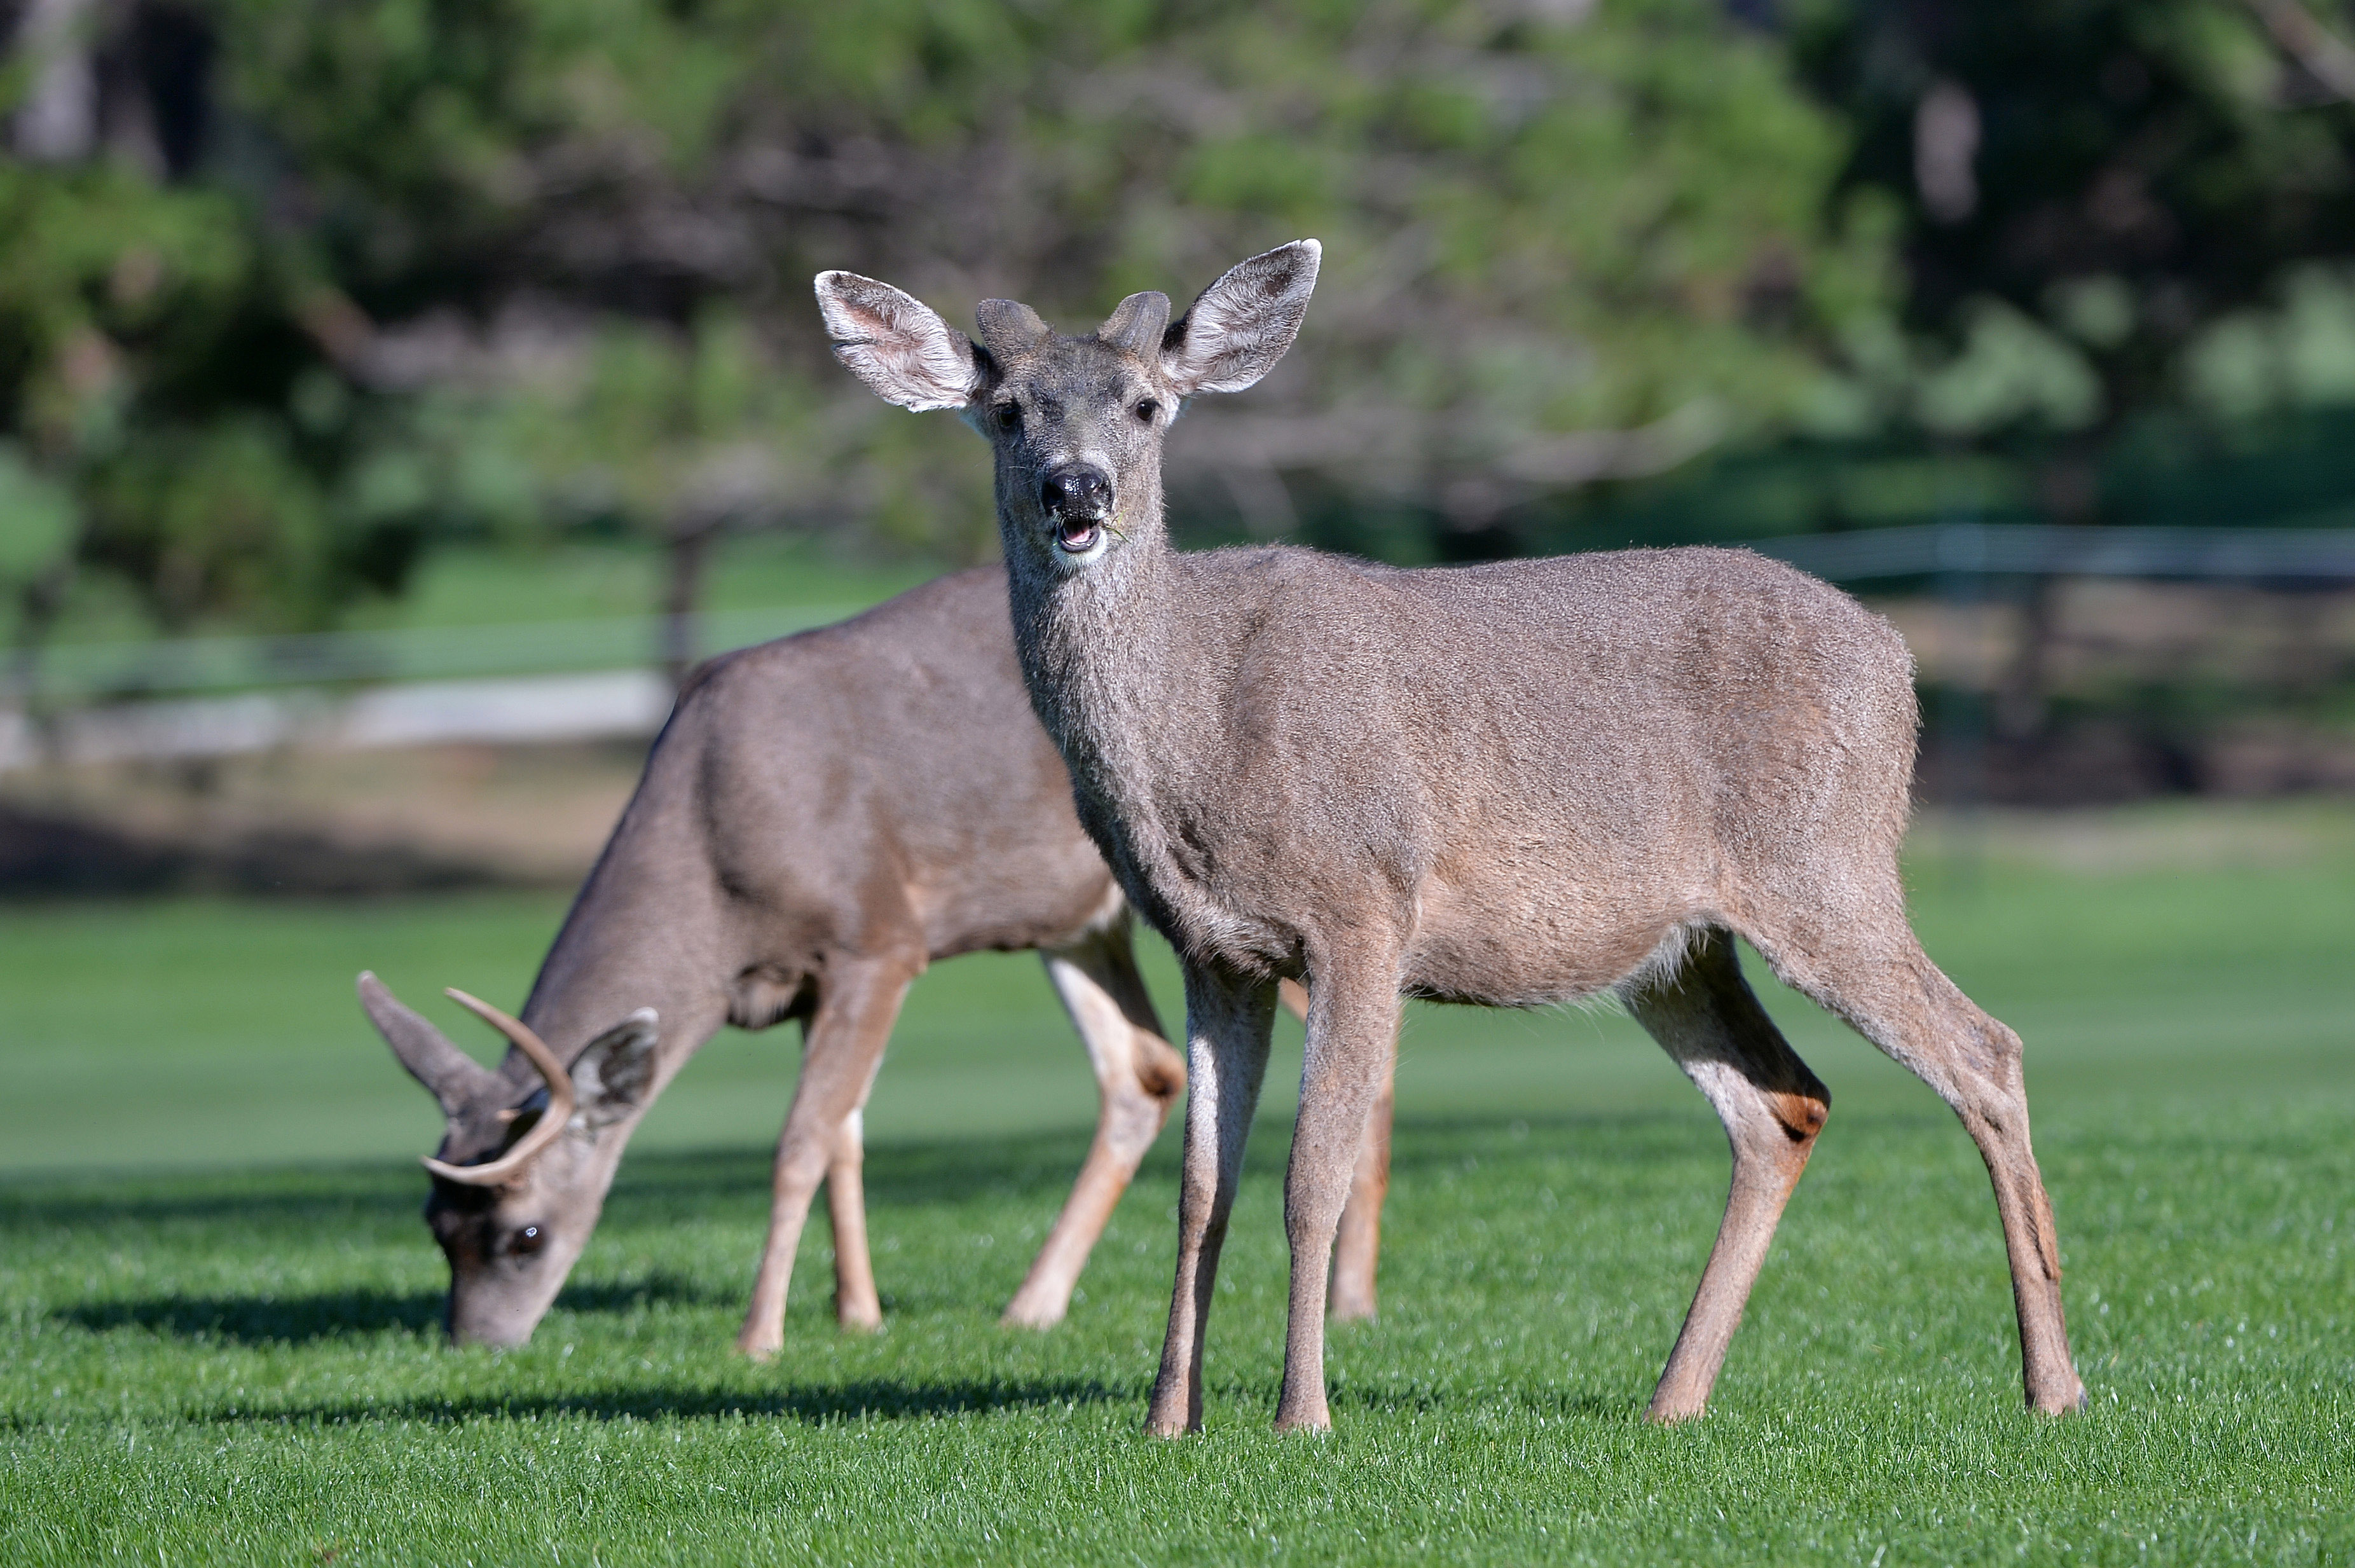 Fears Zombie Deer Disease Could Spread To Humans